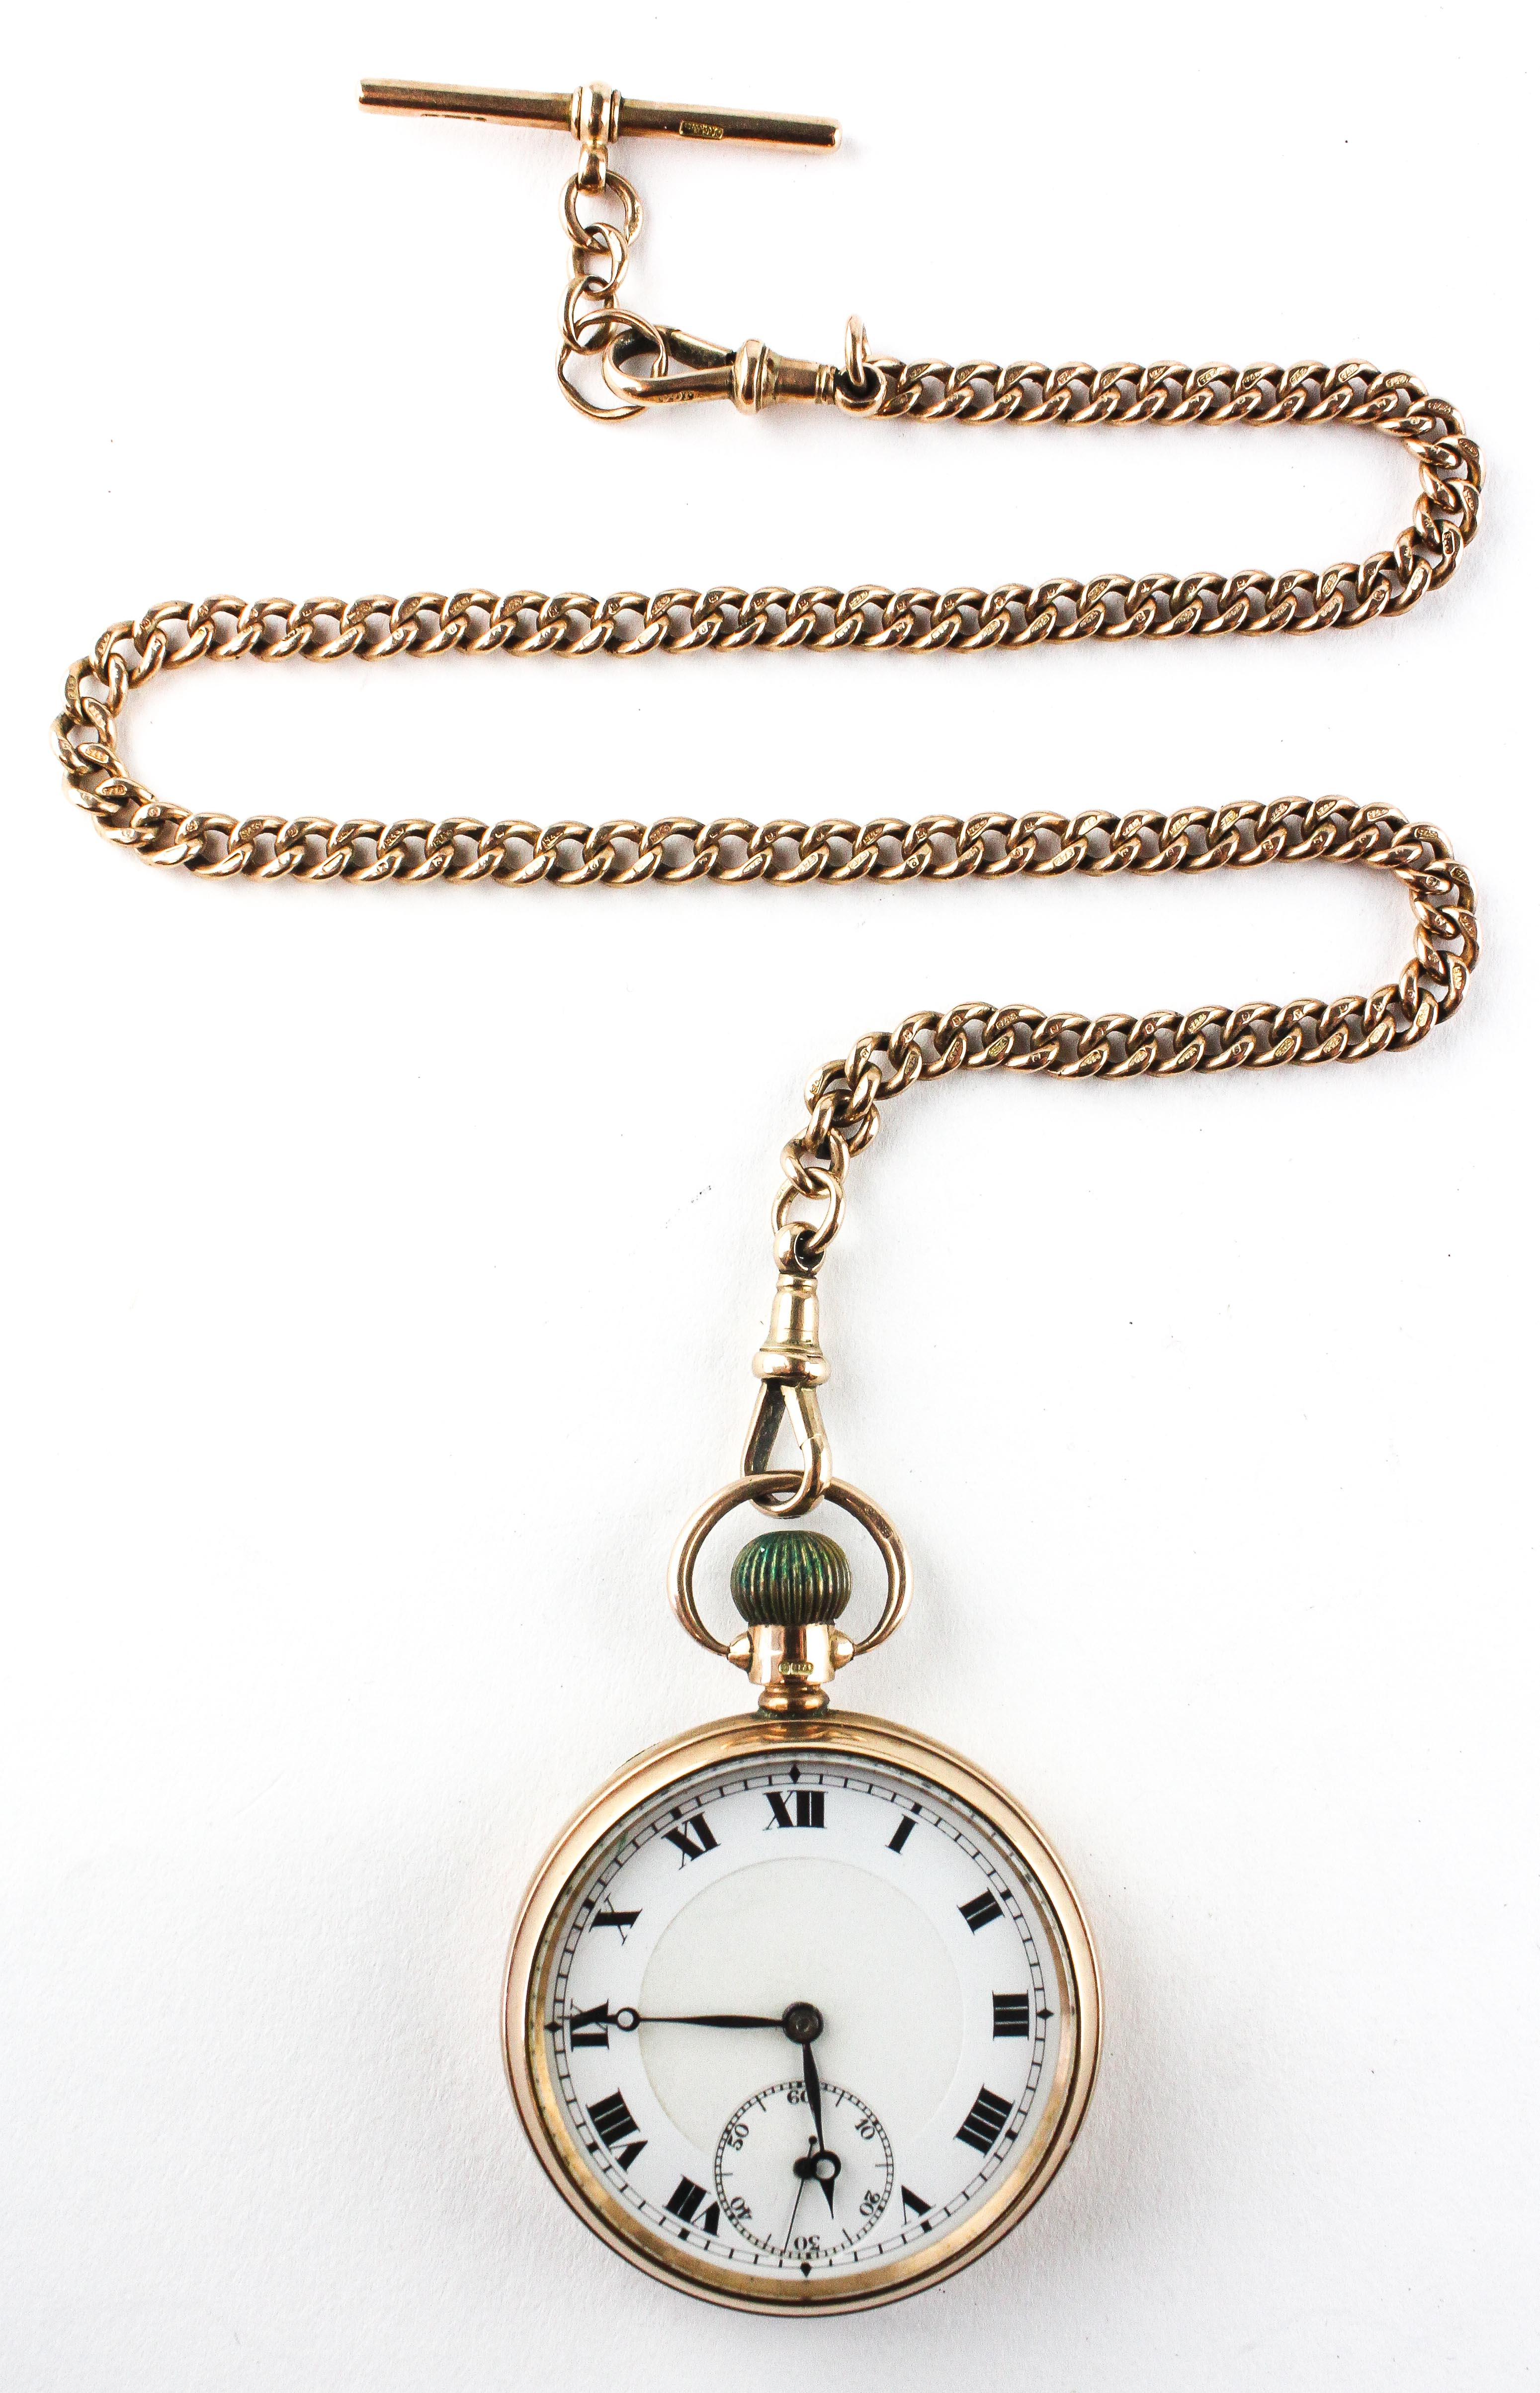 An open face pocket watch. Circular white dial with roman numerals. - Image 2 of 5